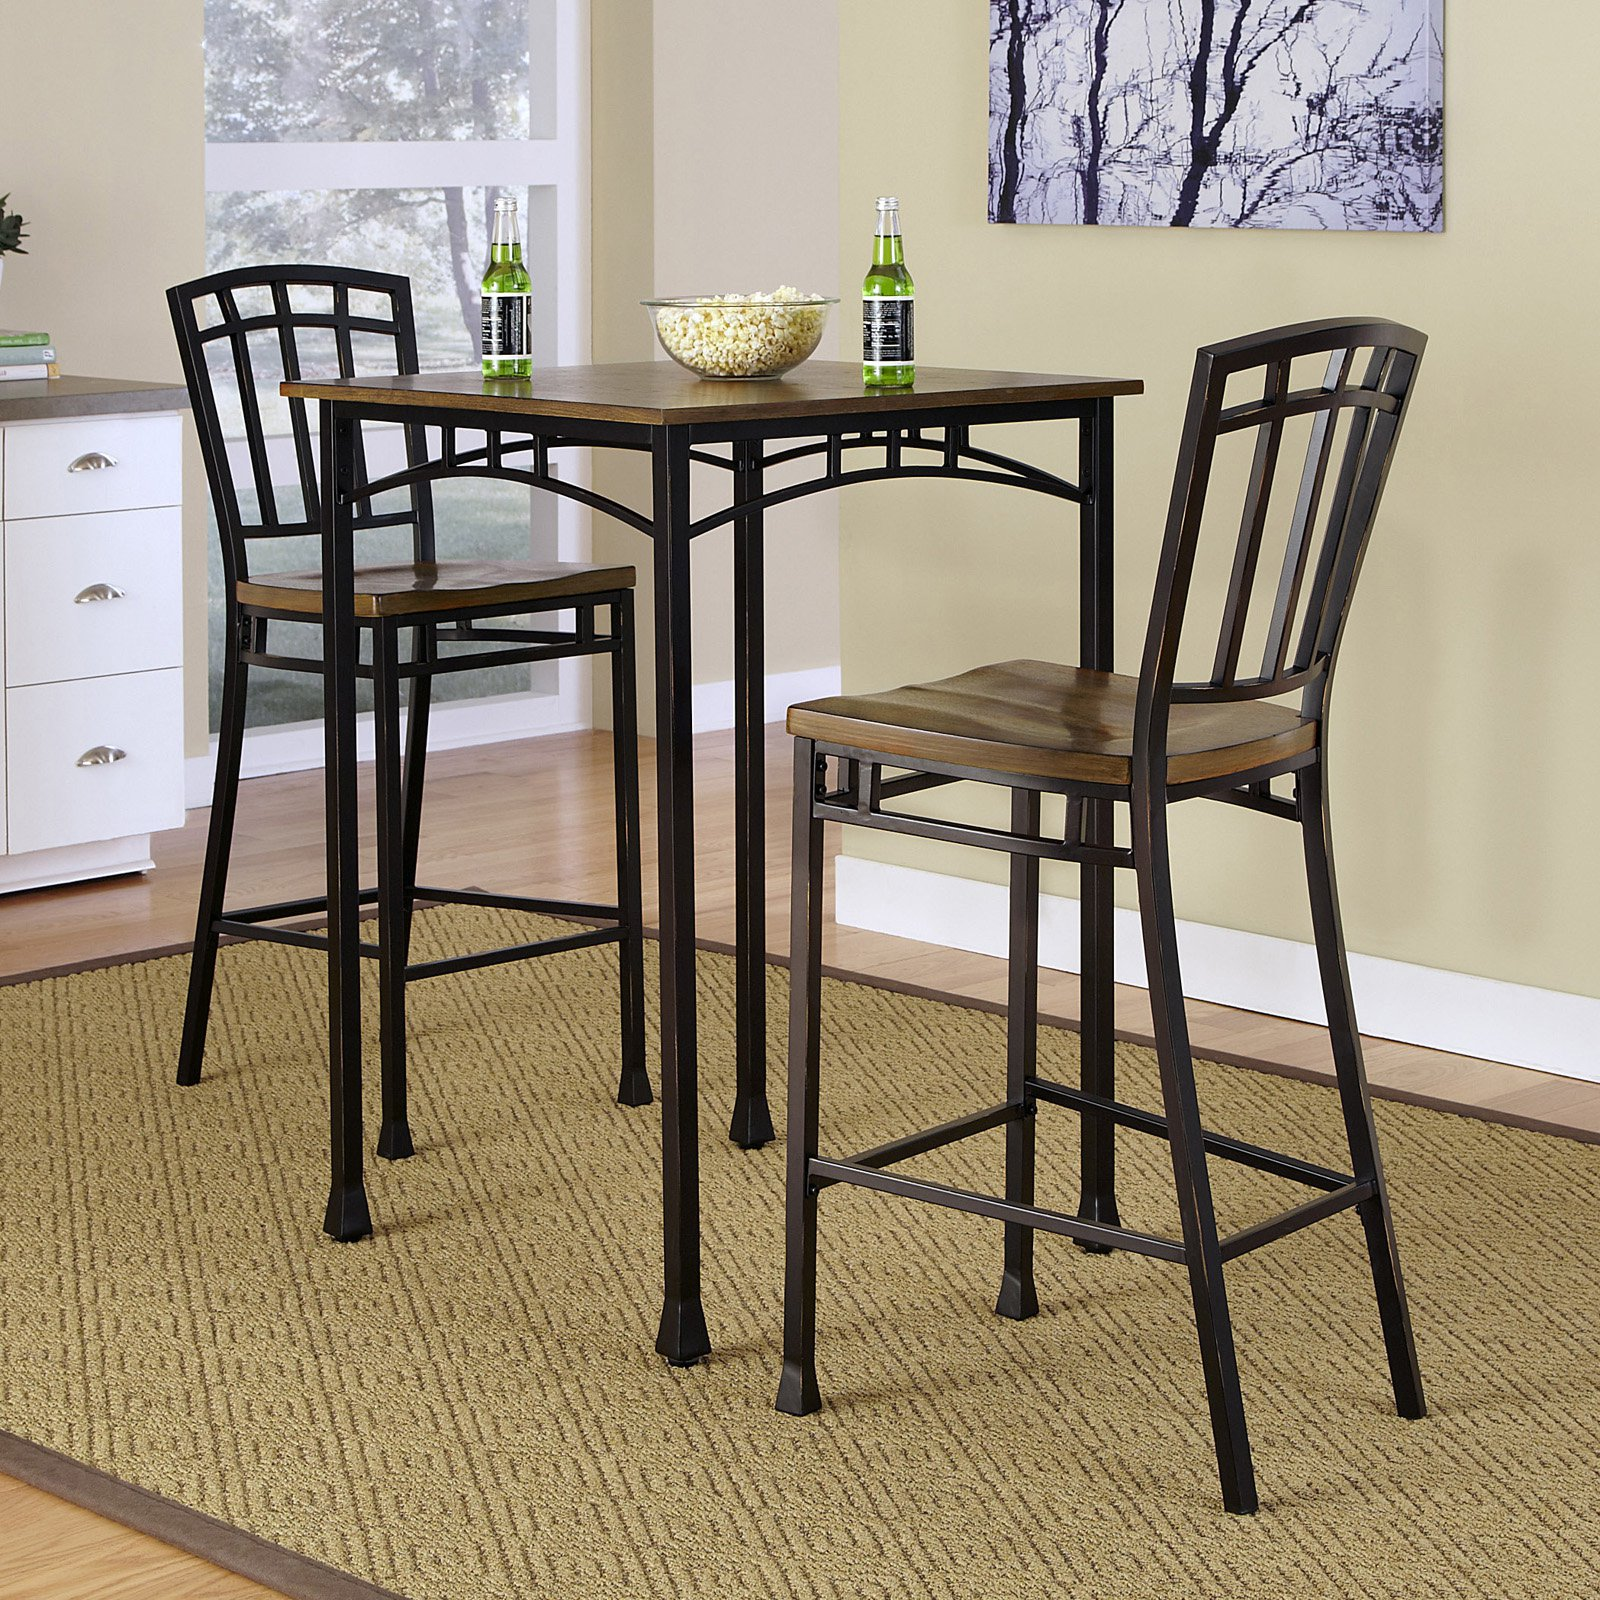 pub table and chairs 3 piece set 2 folding chair walmart modern craftsman 3pc bistro com